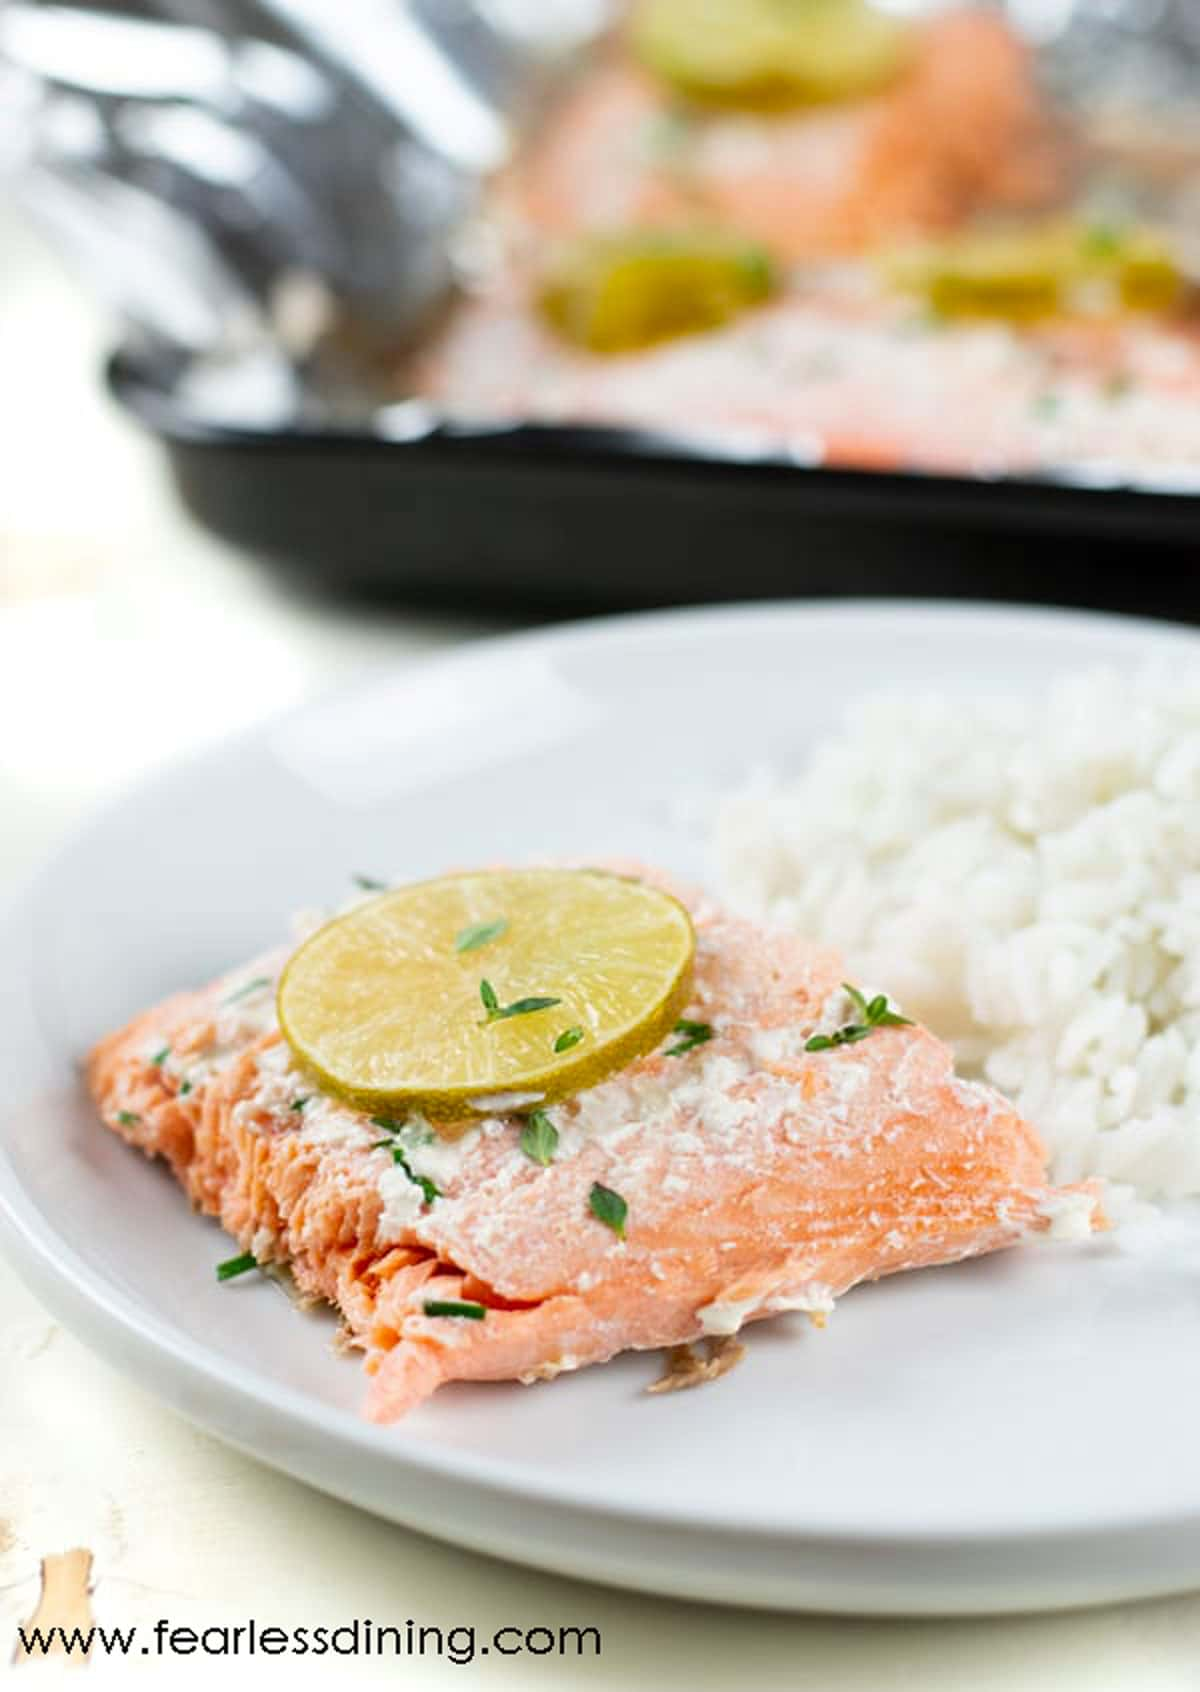 a slice of cooked salmon with rice on a white plate